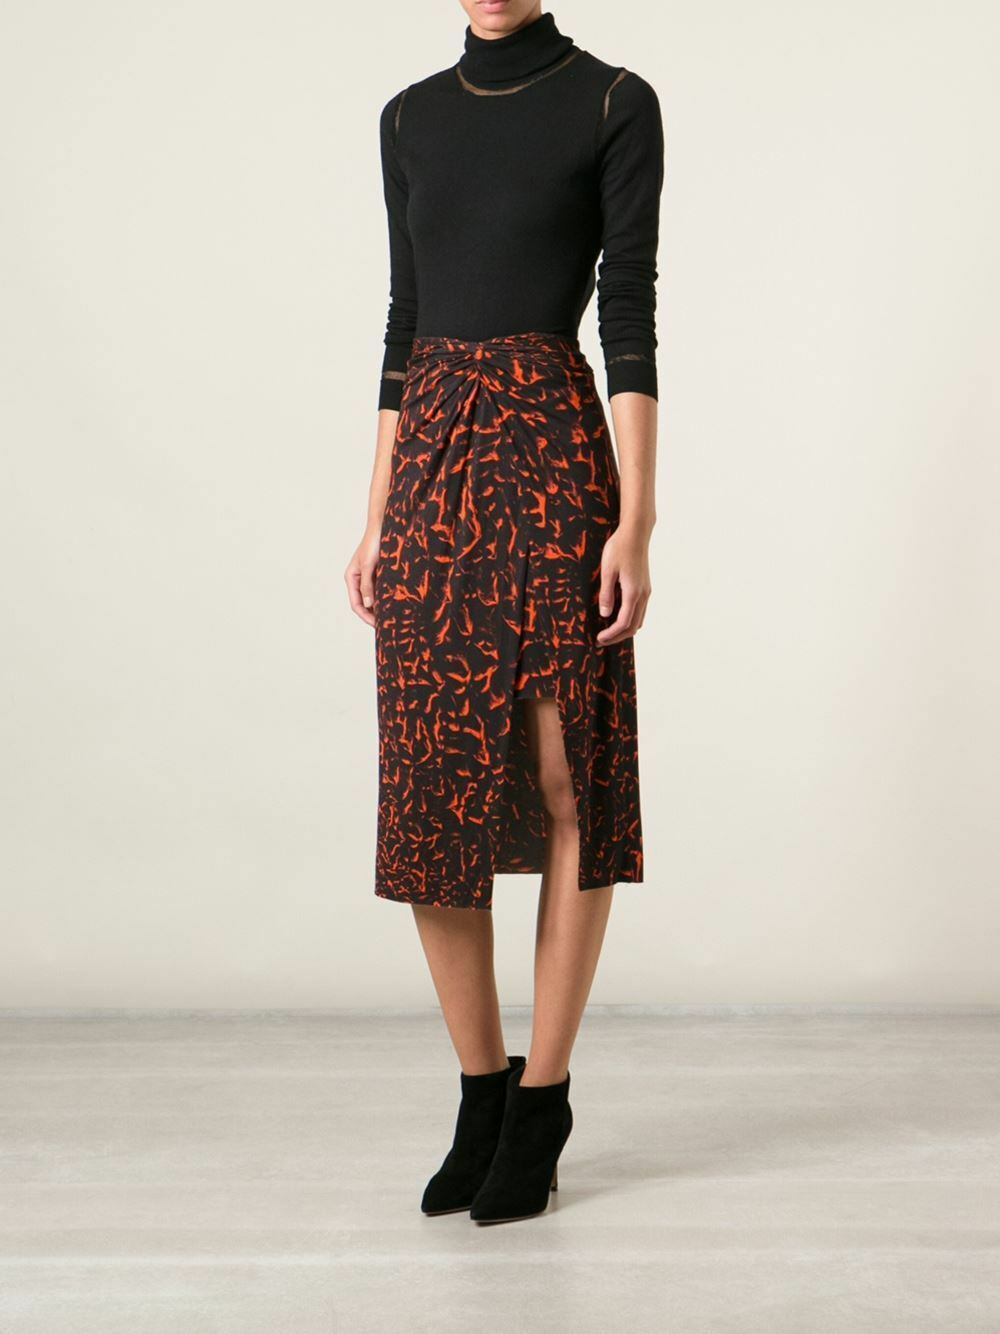 265 New HELMUT LANG TWIST KNOT Printed Twisted Knot Skirt P XS